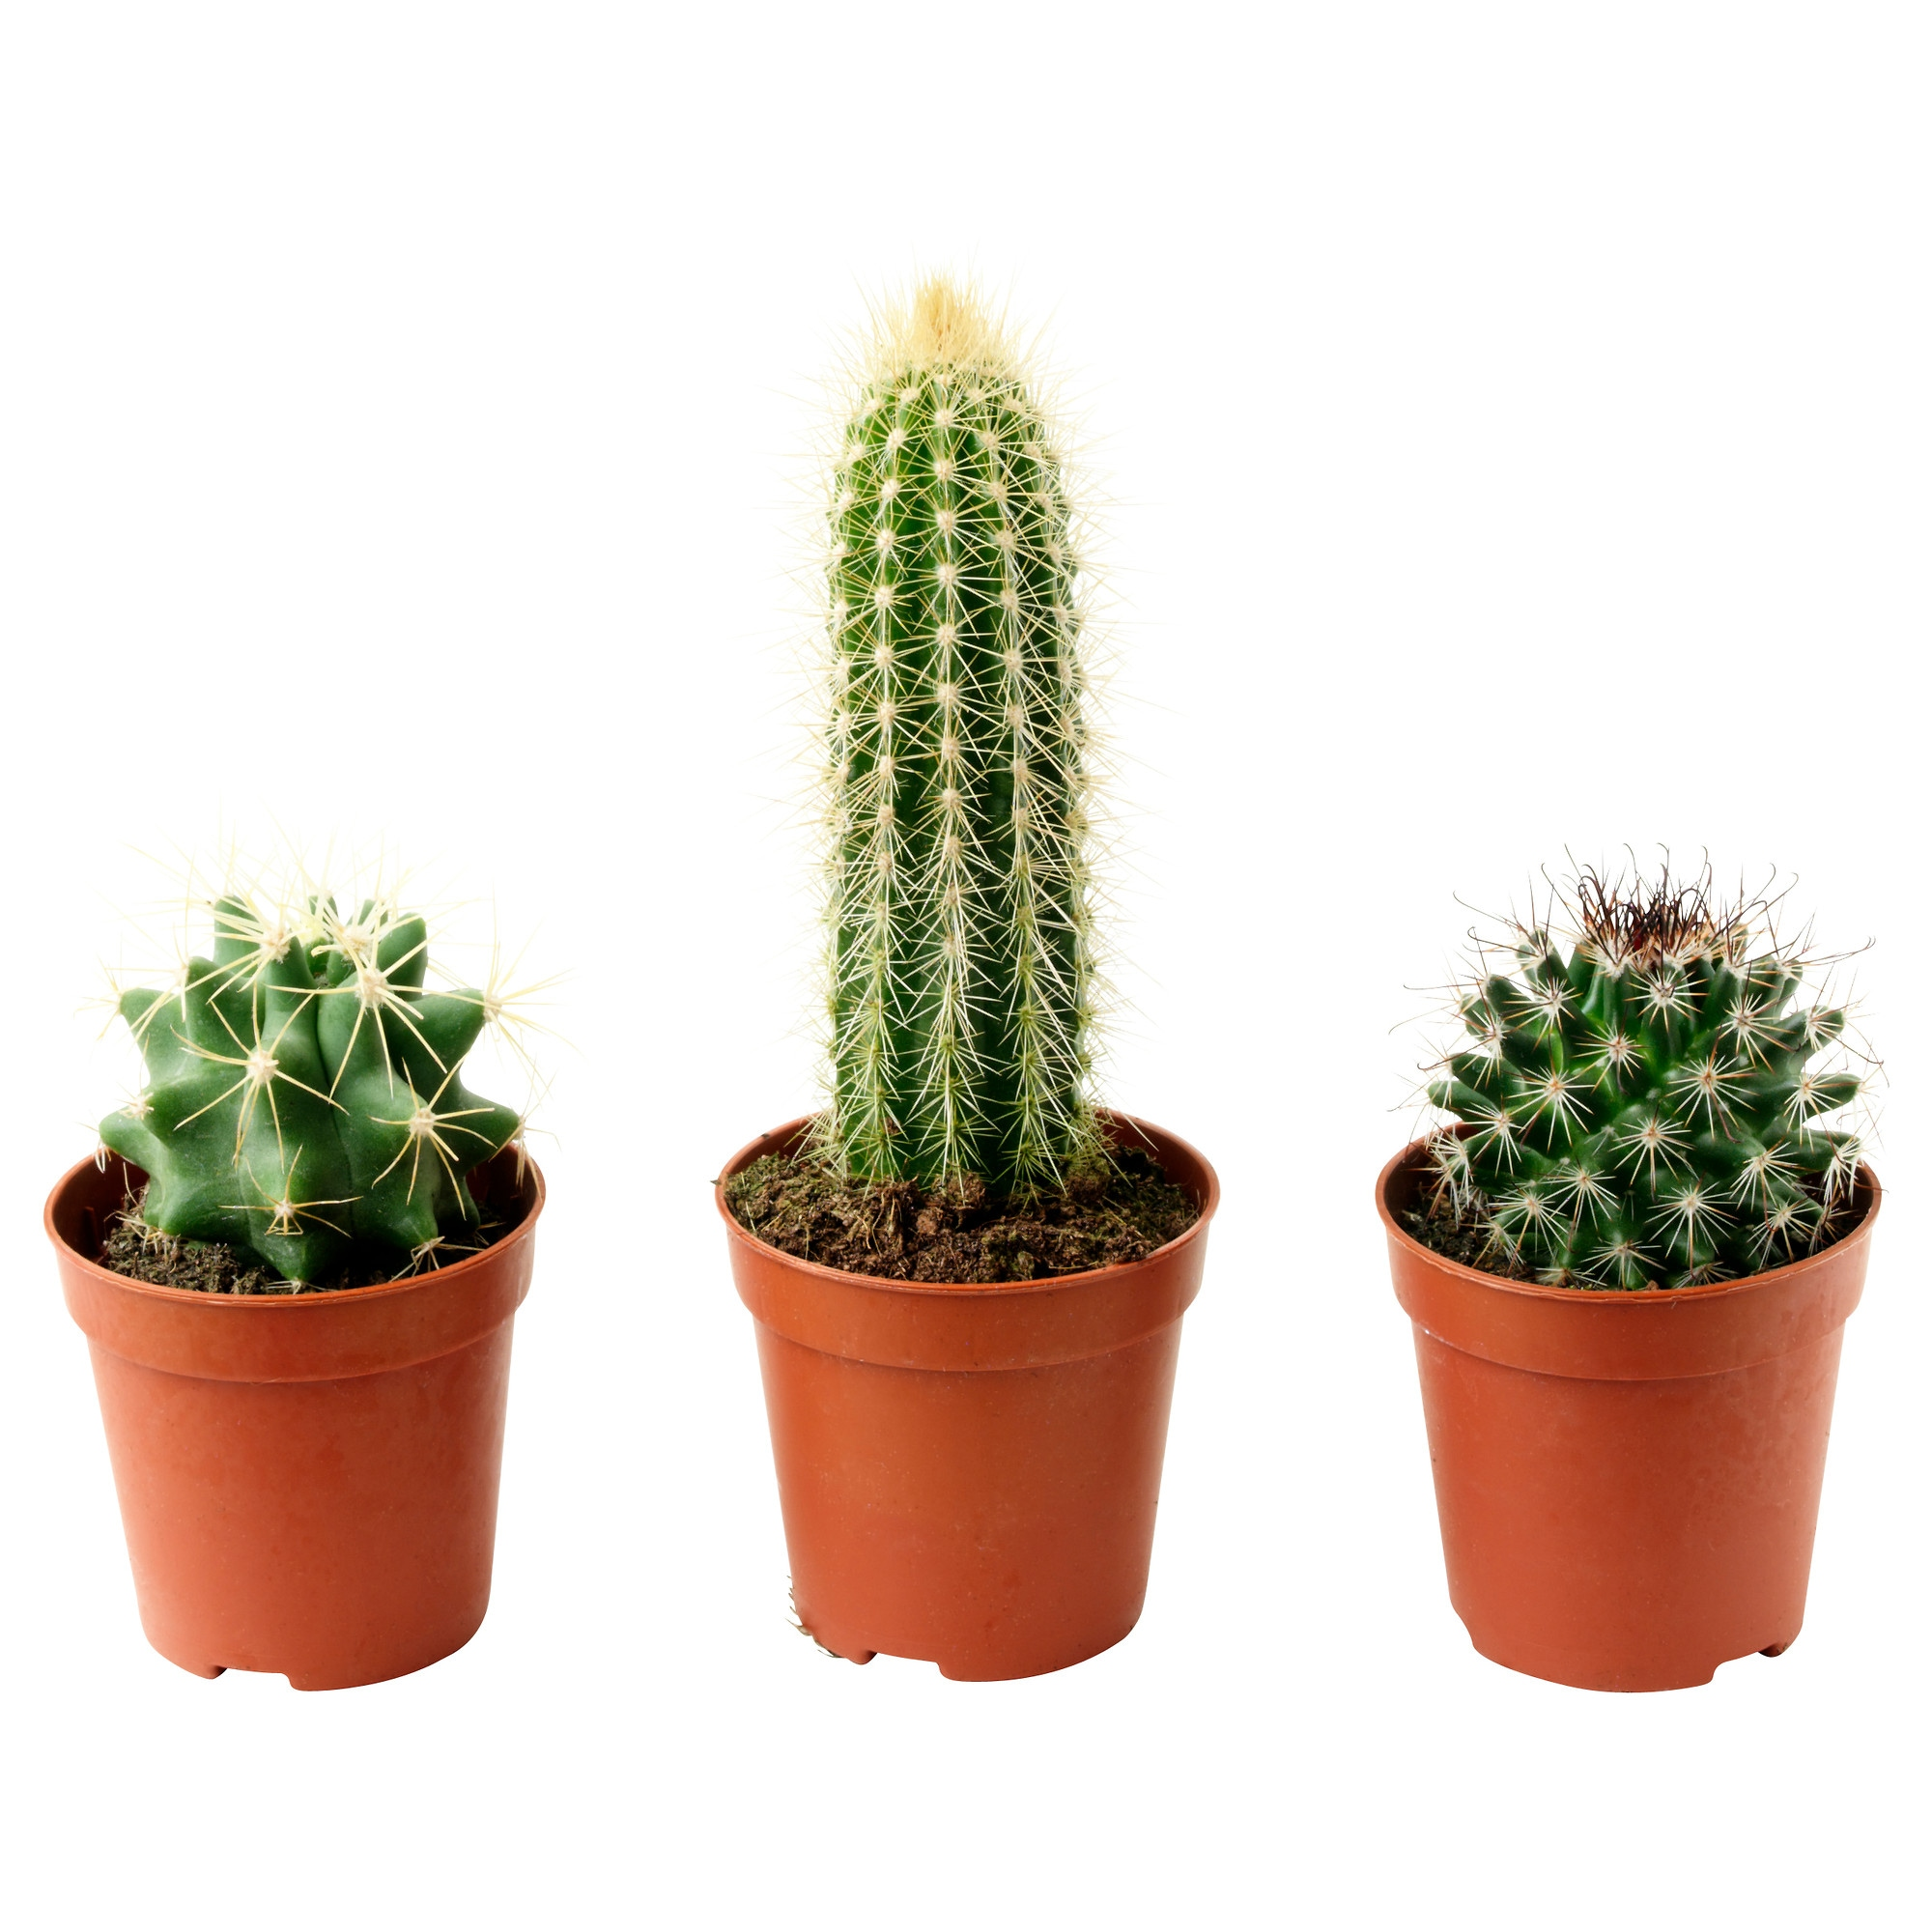 Potted cactus images galleries with a for Faux cactus ikea